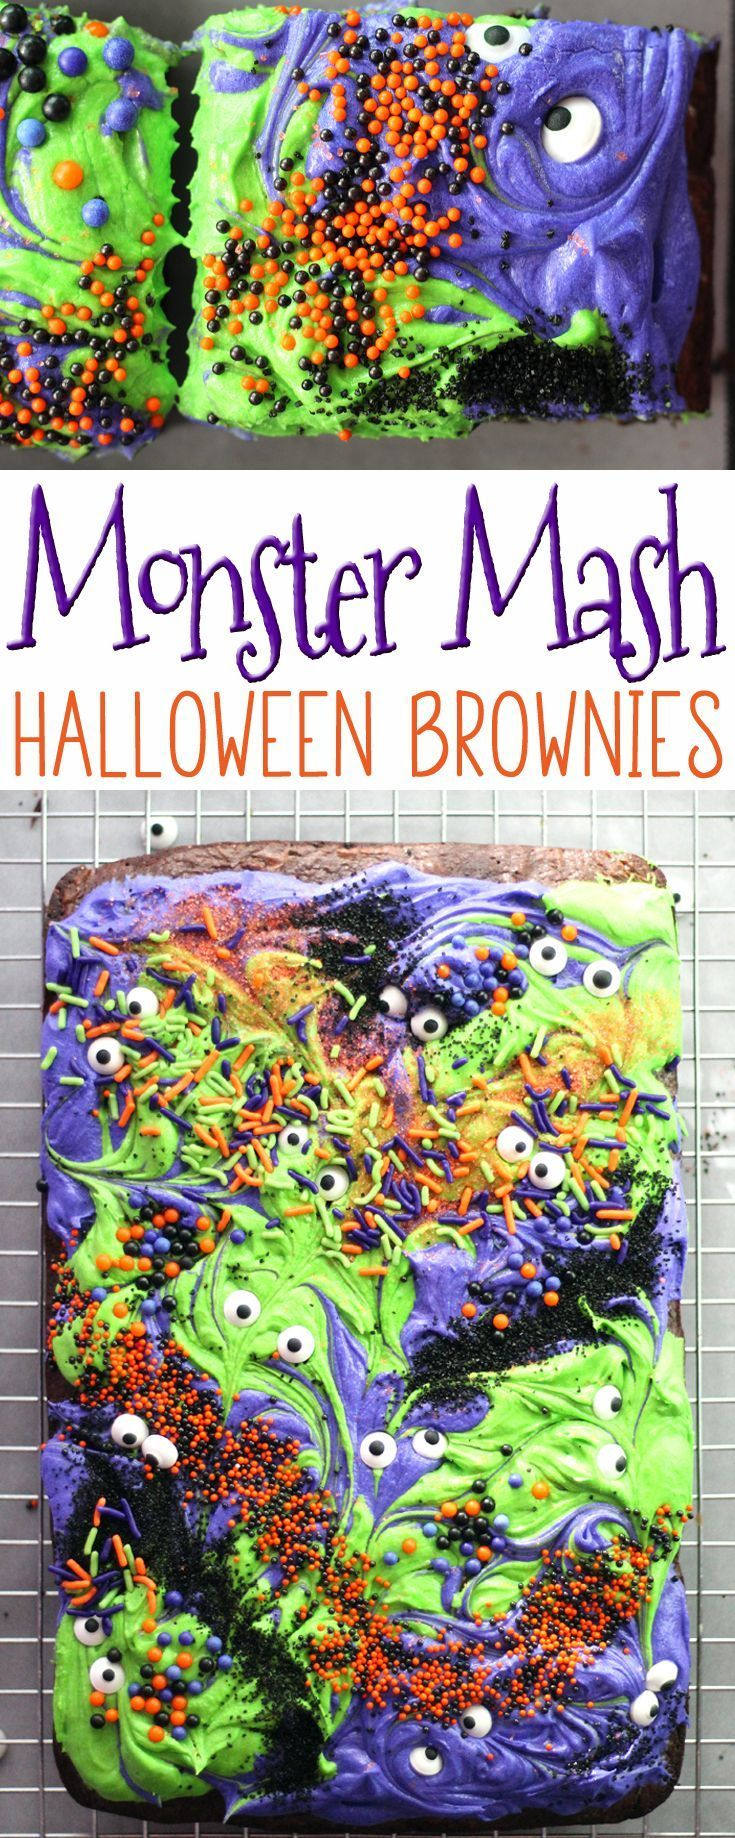 Halloween Season is officially here! The time of monsters and scary movies, haun…